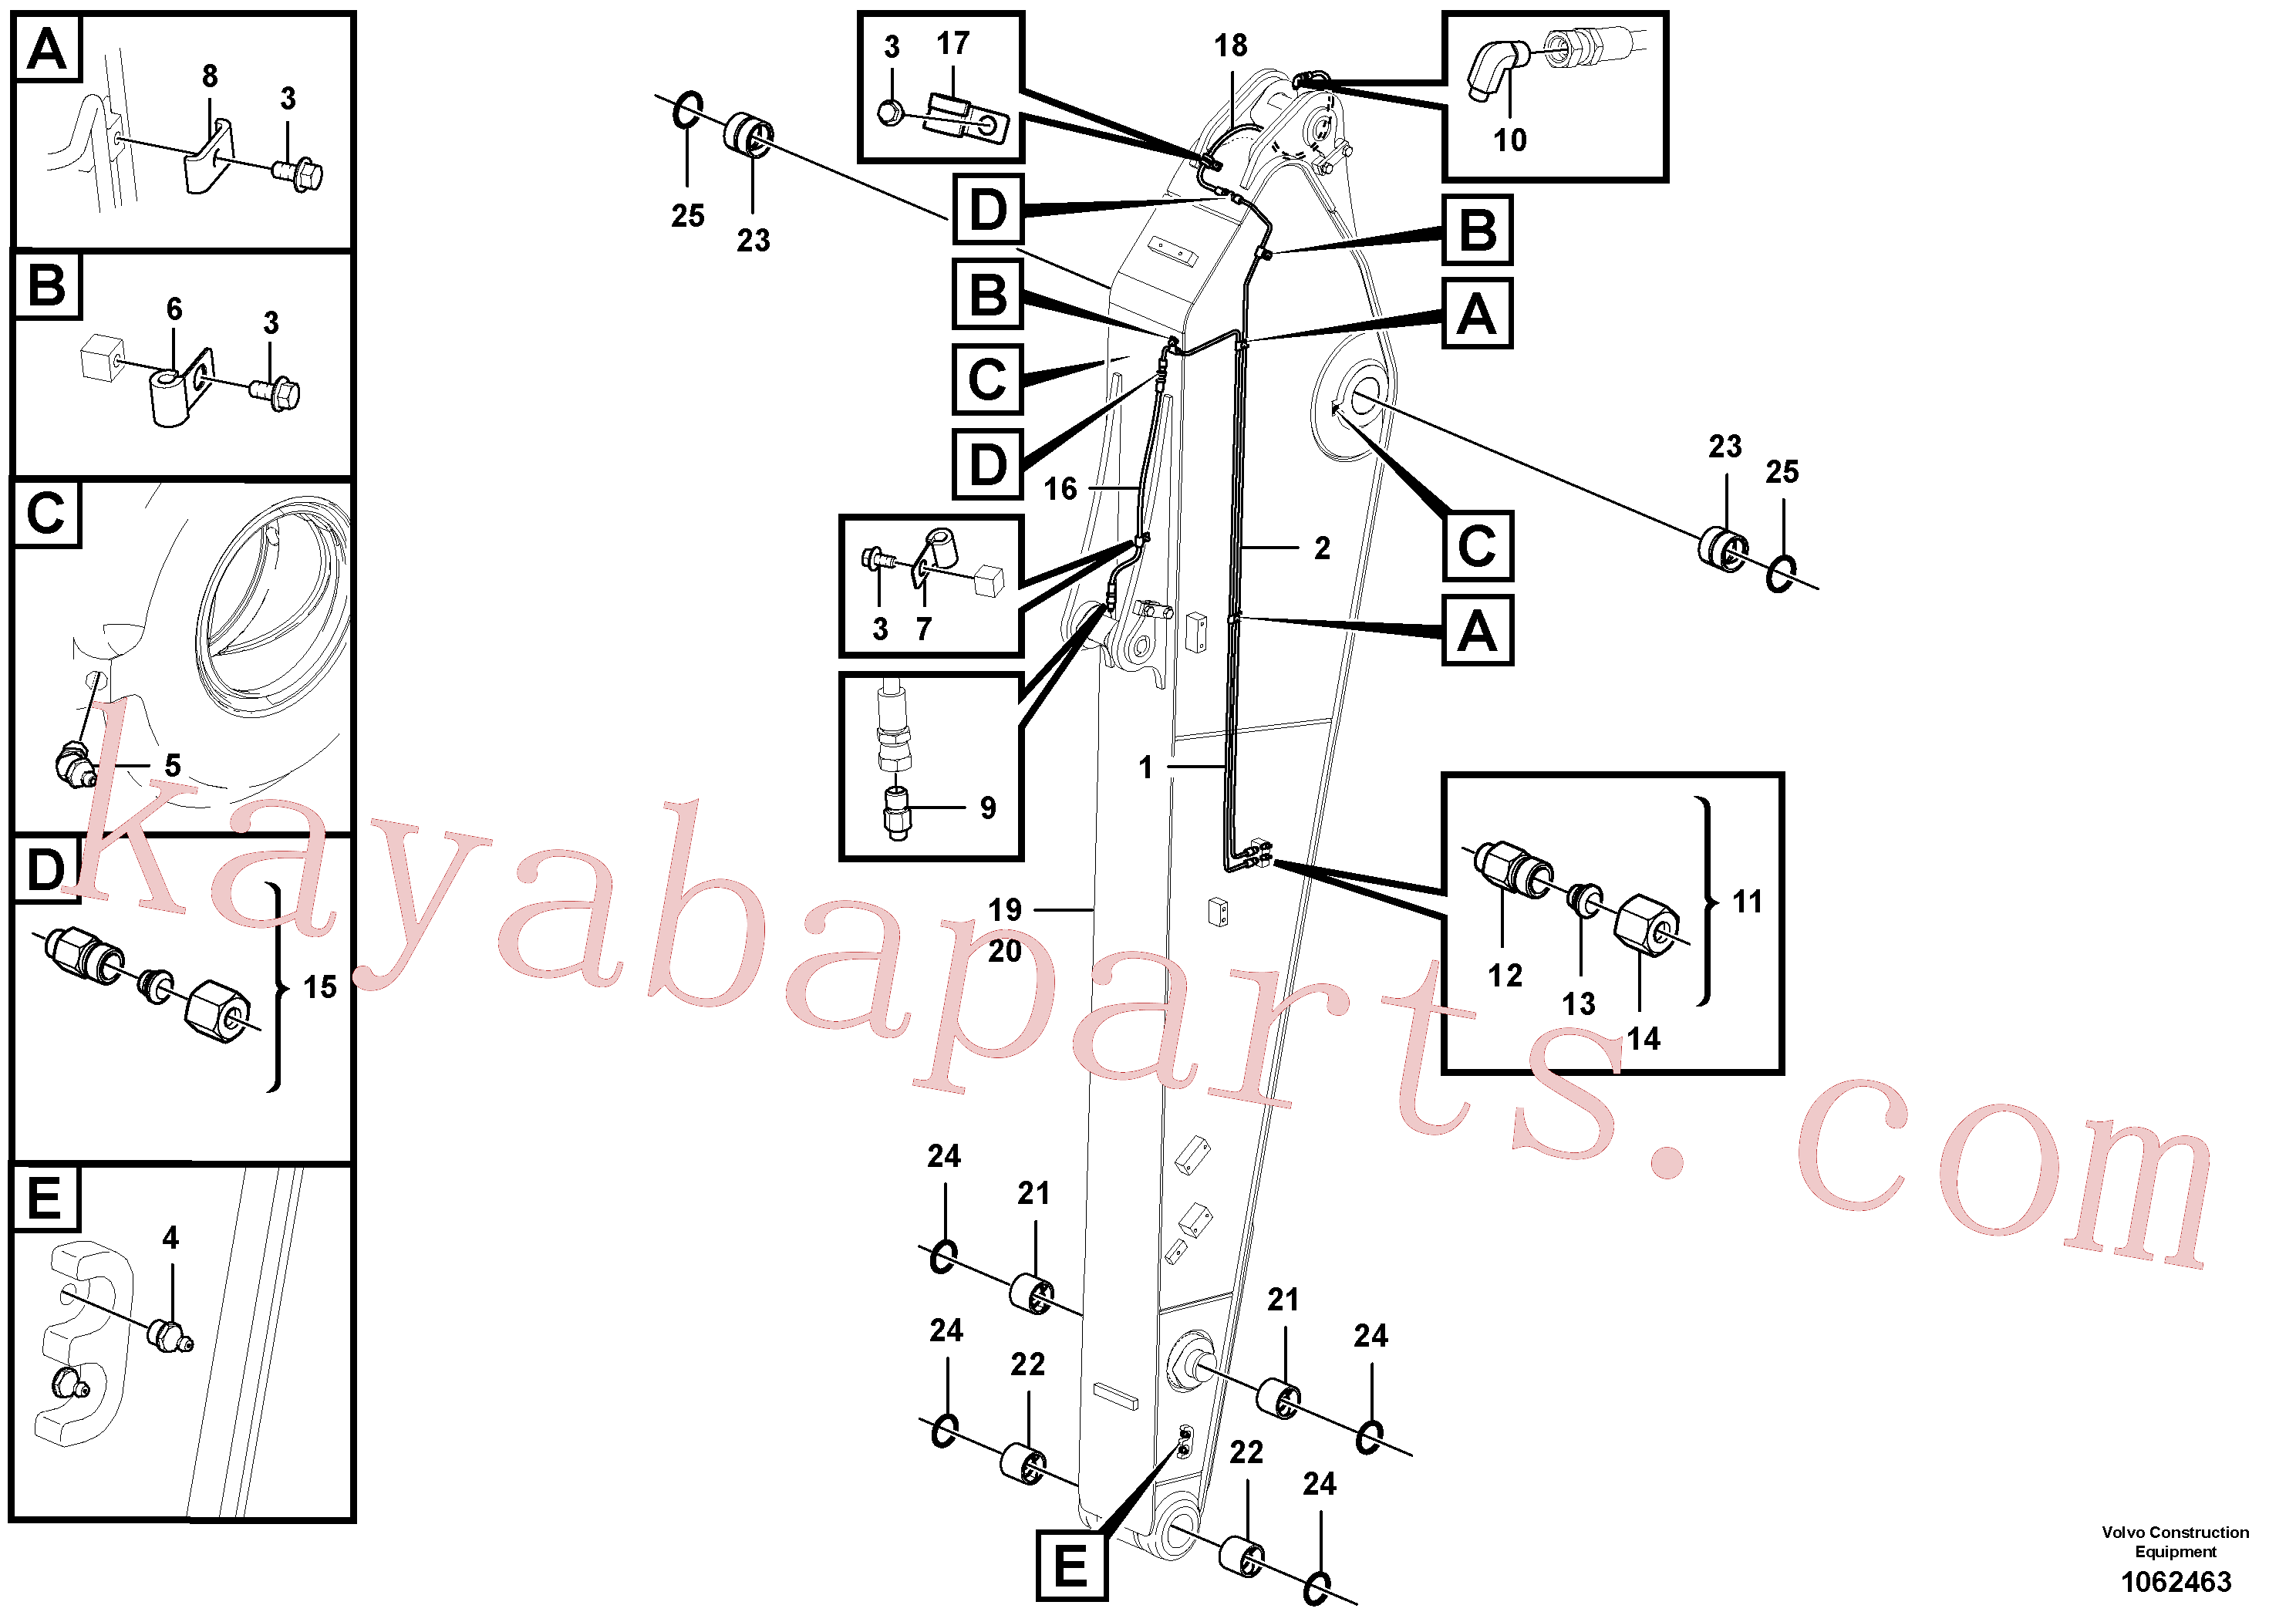 VOE14882445 for Volvo Dipper arm and grease piping with piping seat(1062463 assembly)